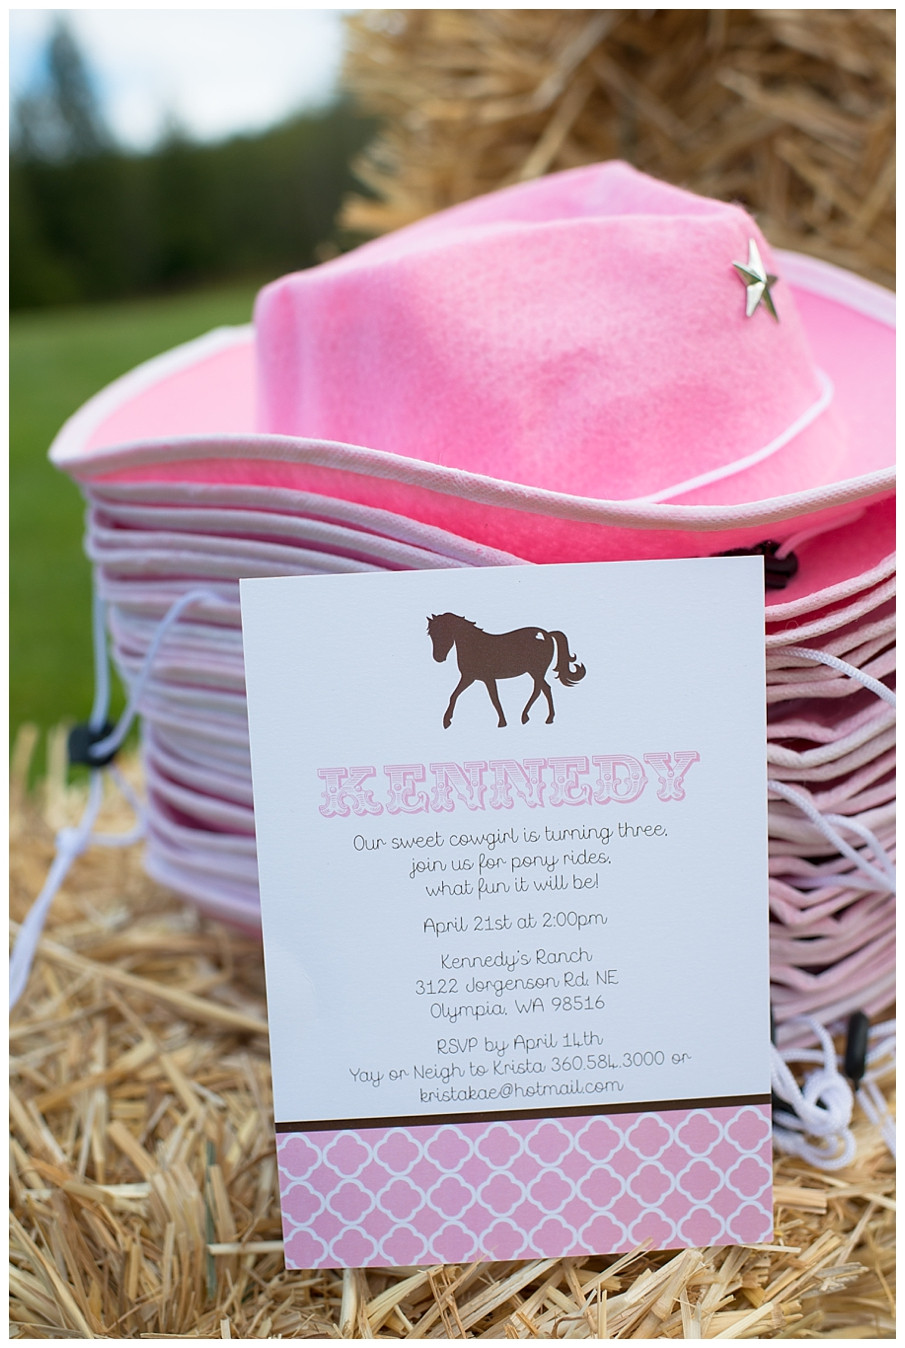 Best ideas about Horse Decorations For Birthday Party . Save or Pin A Pink and Brown Pony Party Hoopla Events Now.